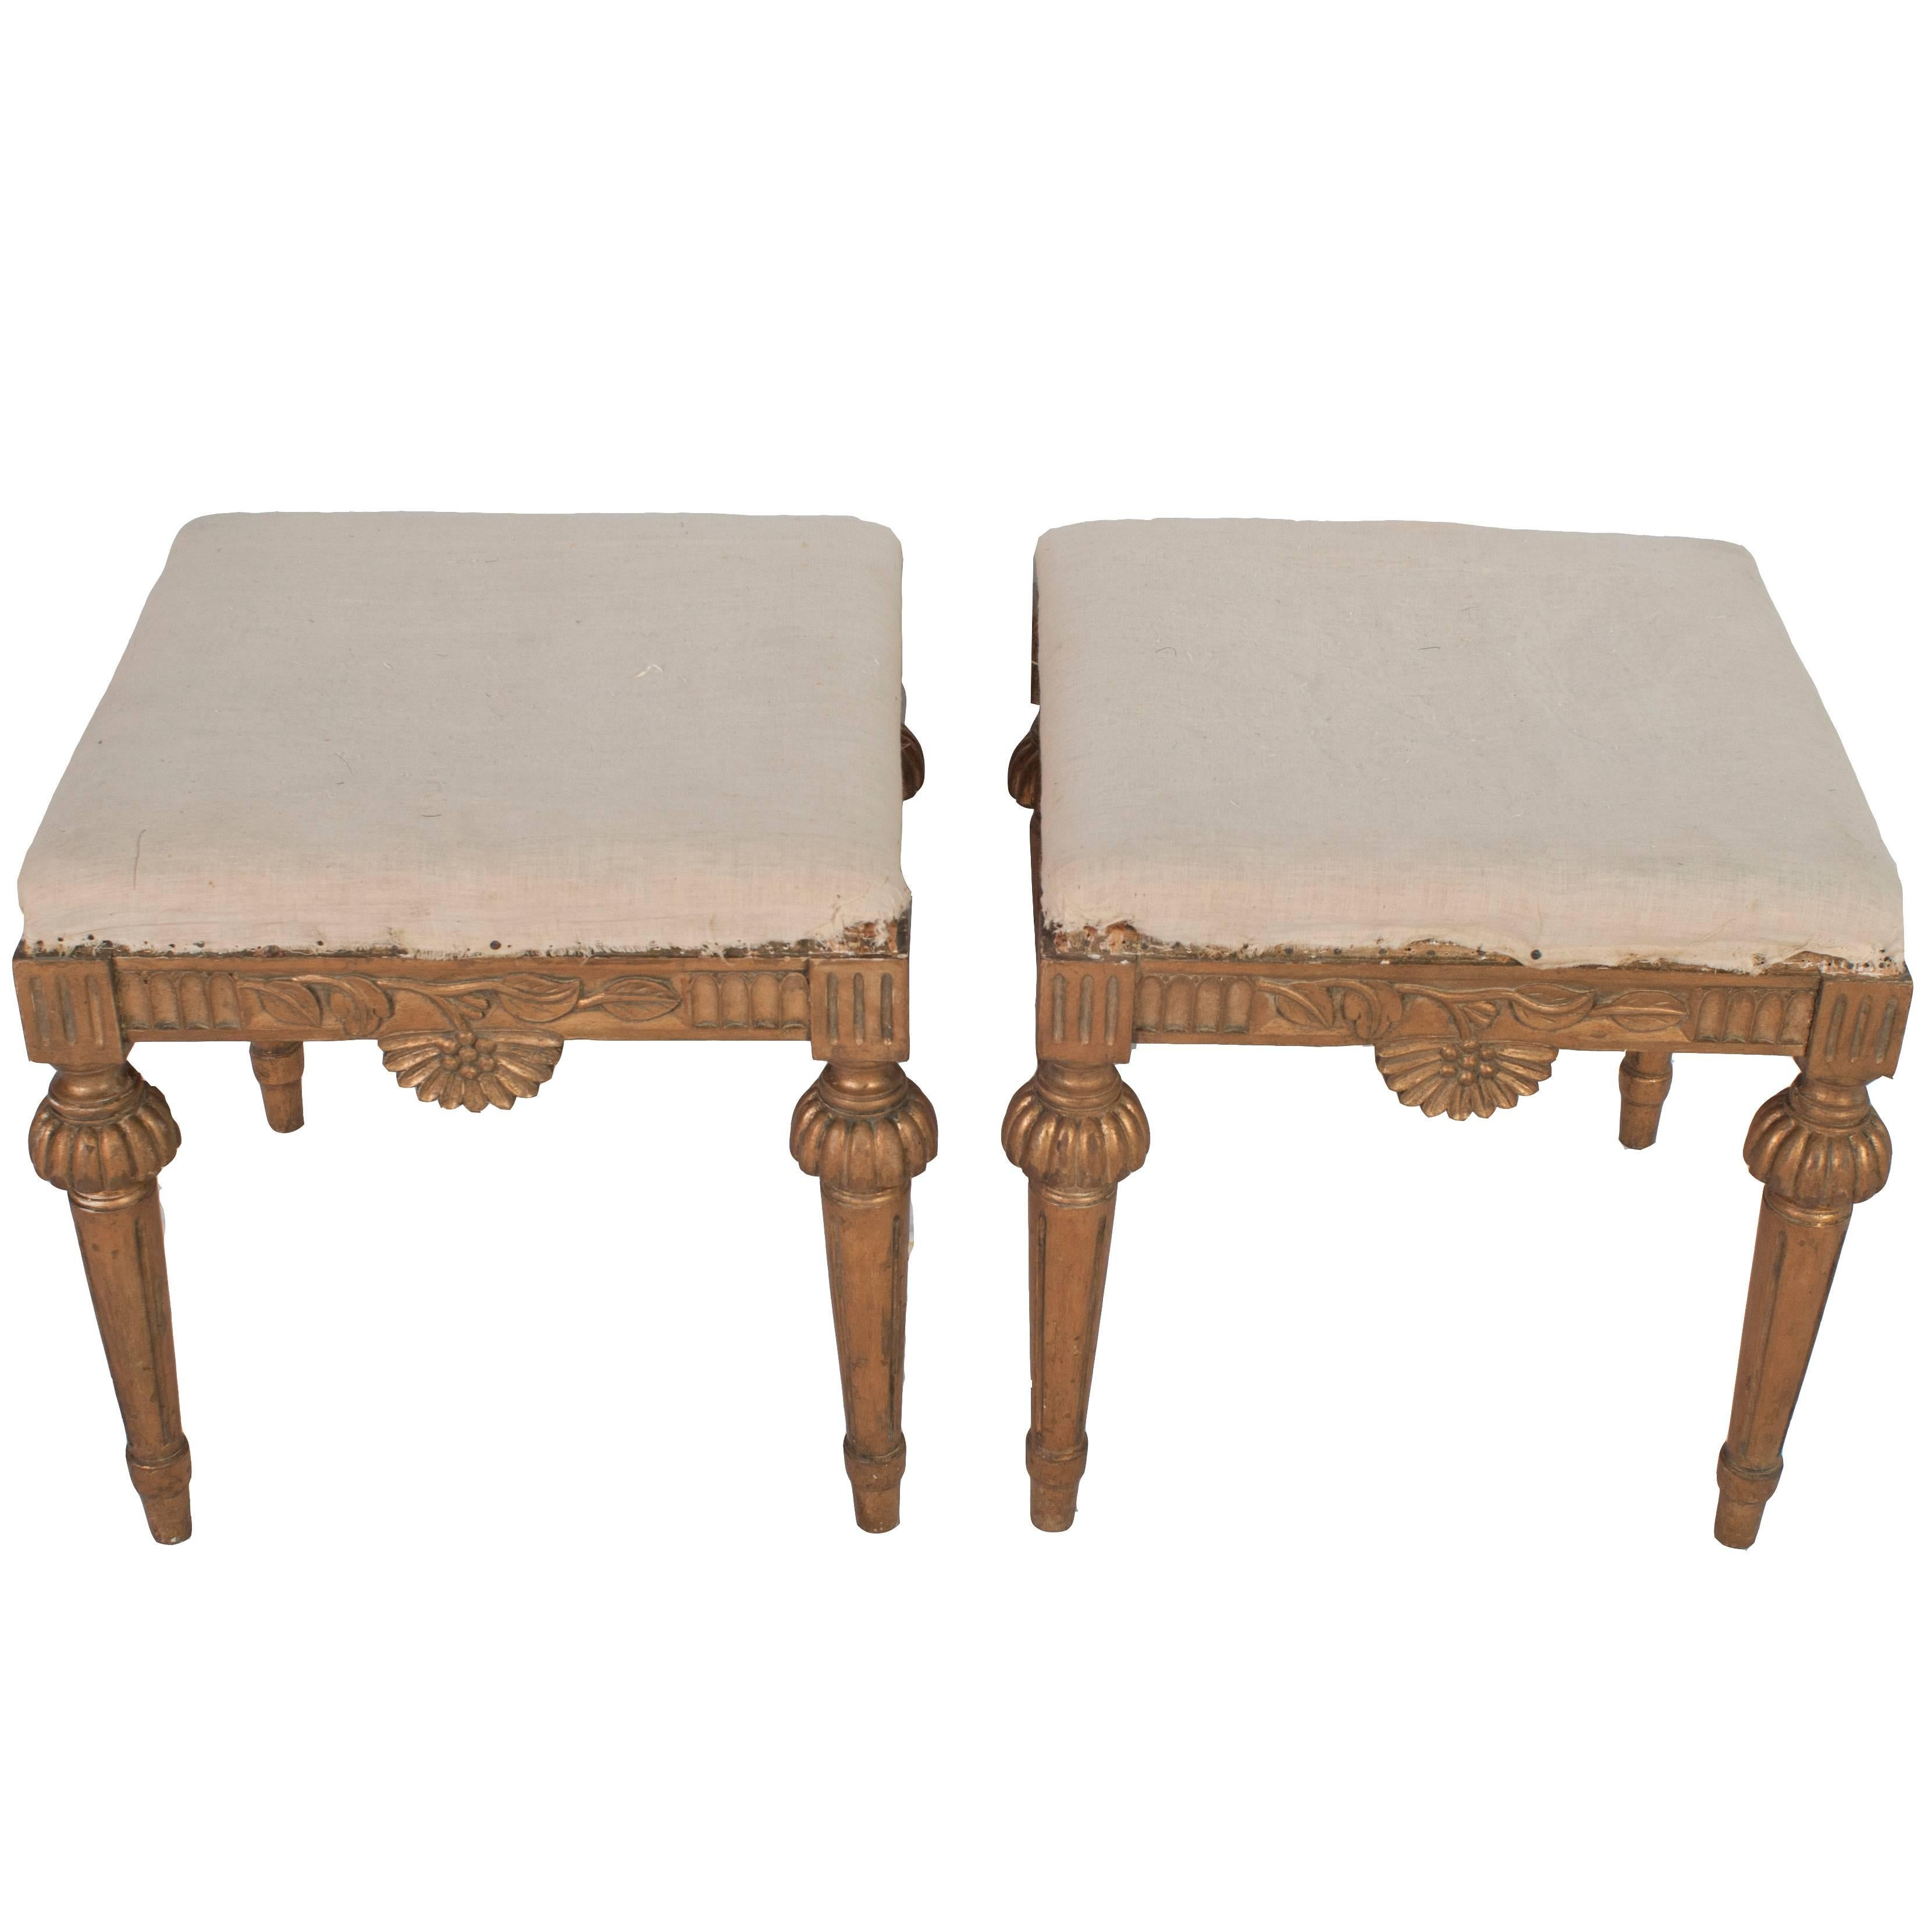 Pair of Natural Wood Gustavian Stools, Stripped to Their Natural Wood Color